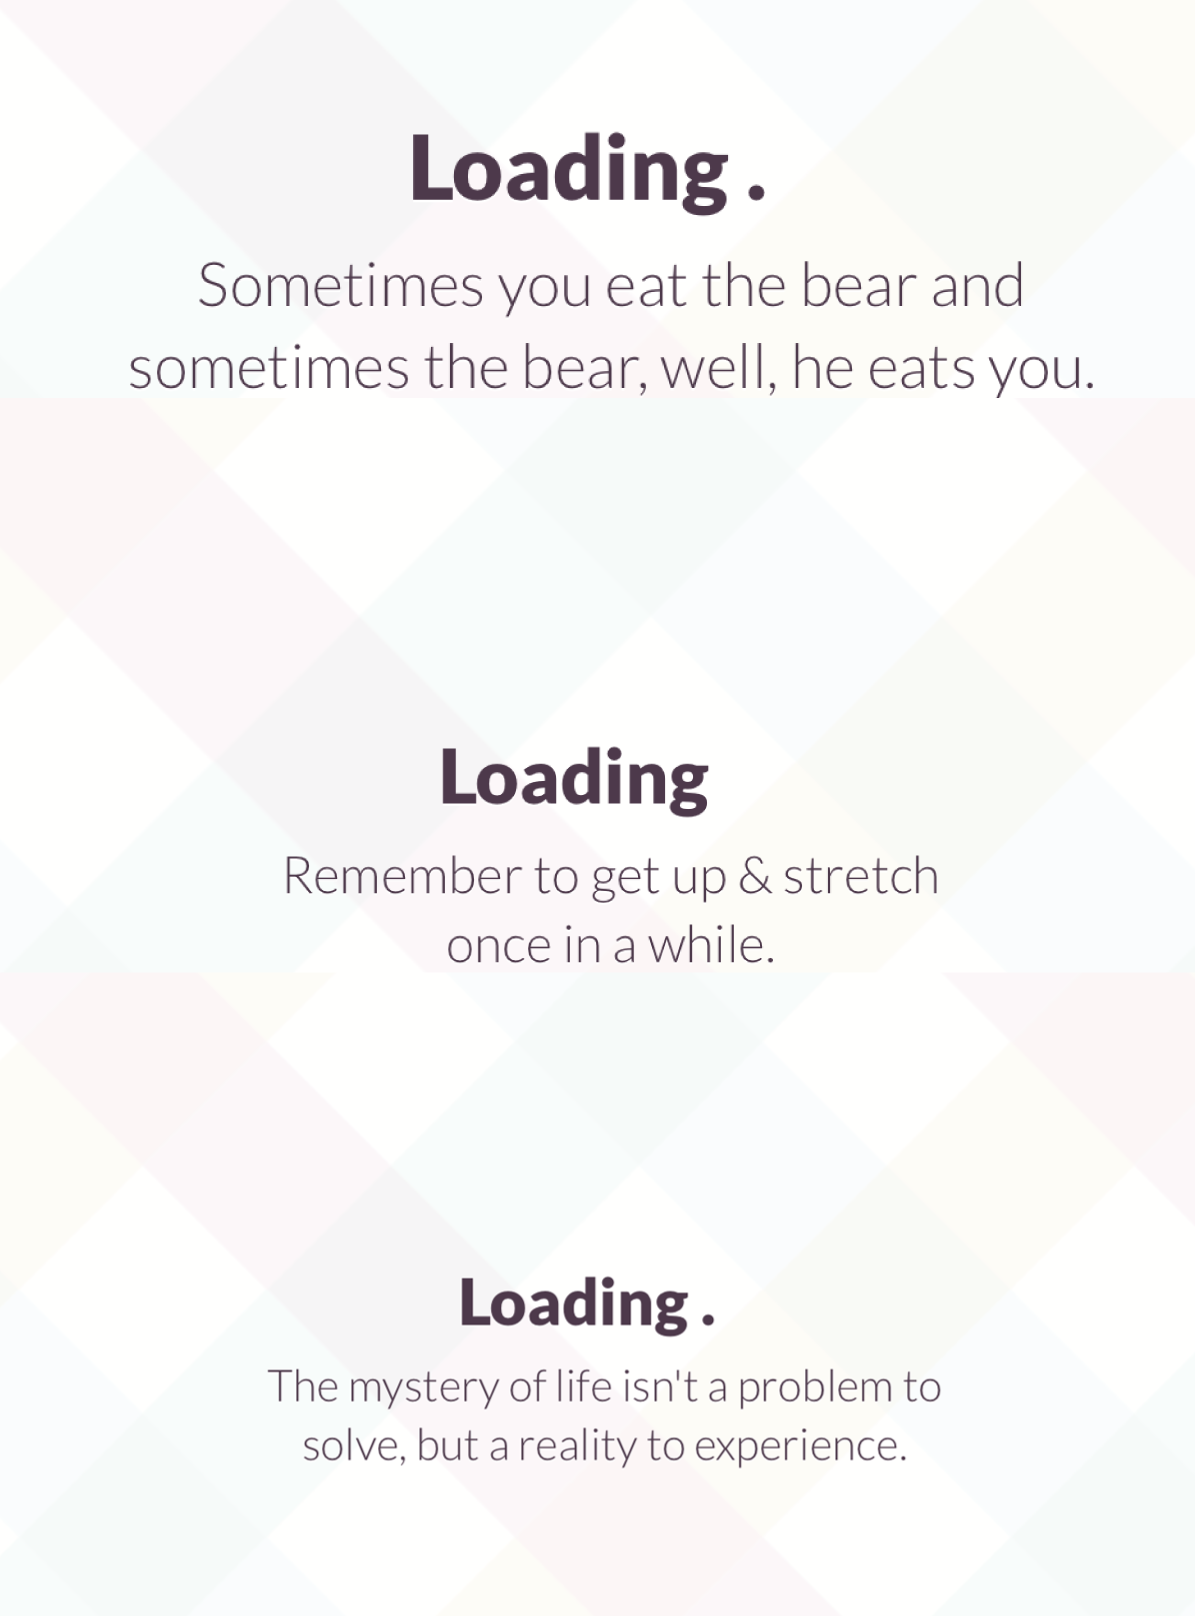 Loading messages add some personality to an otherwise dry process.